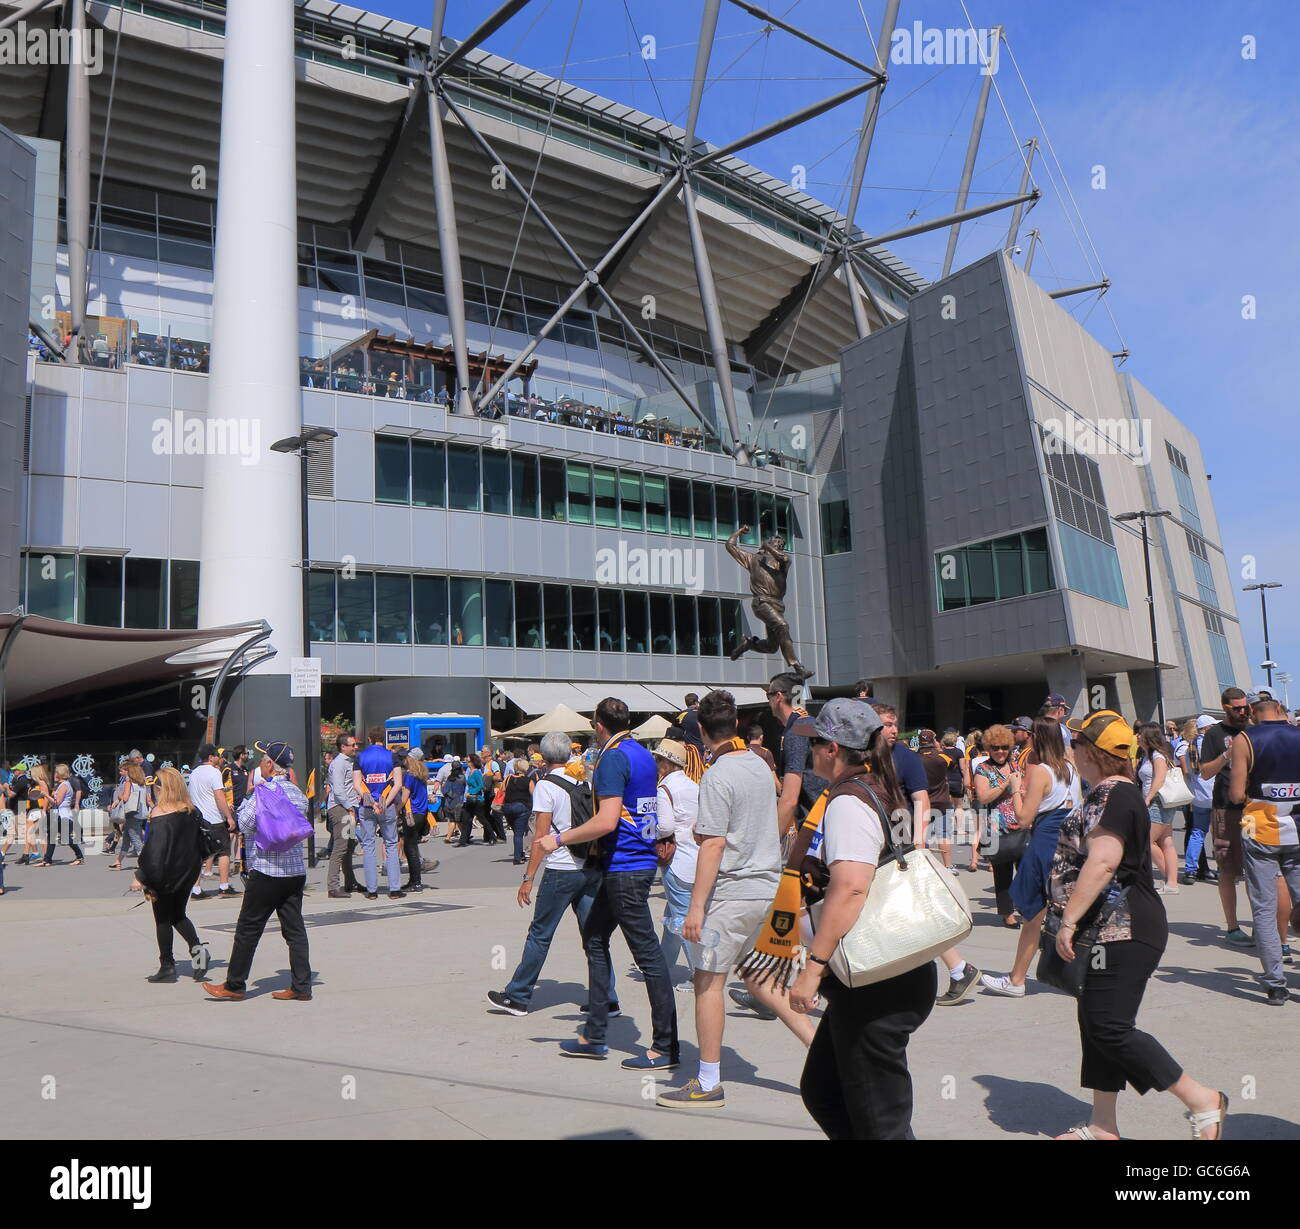 People visit MCG for AFL ground final game in Melbourne Australia. - Stock Image